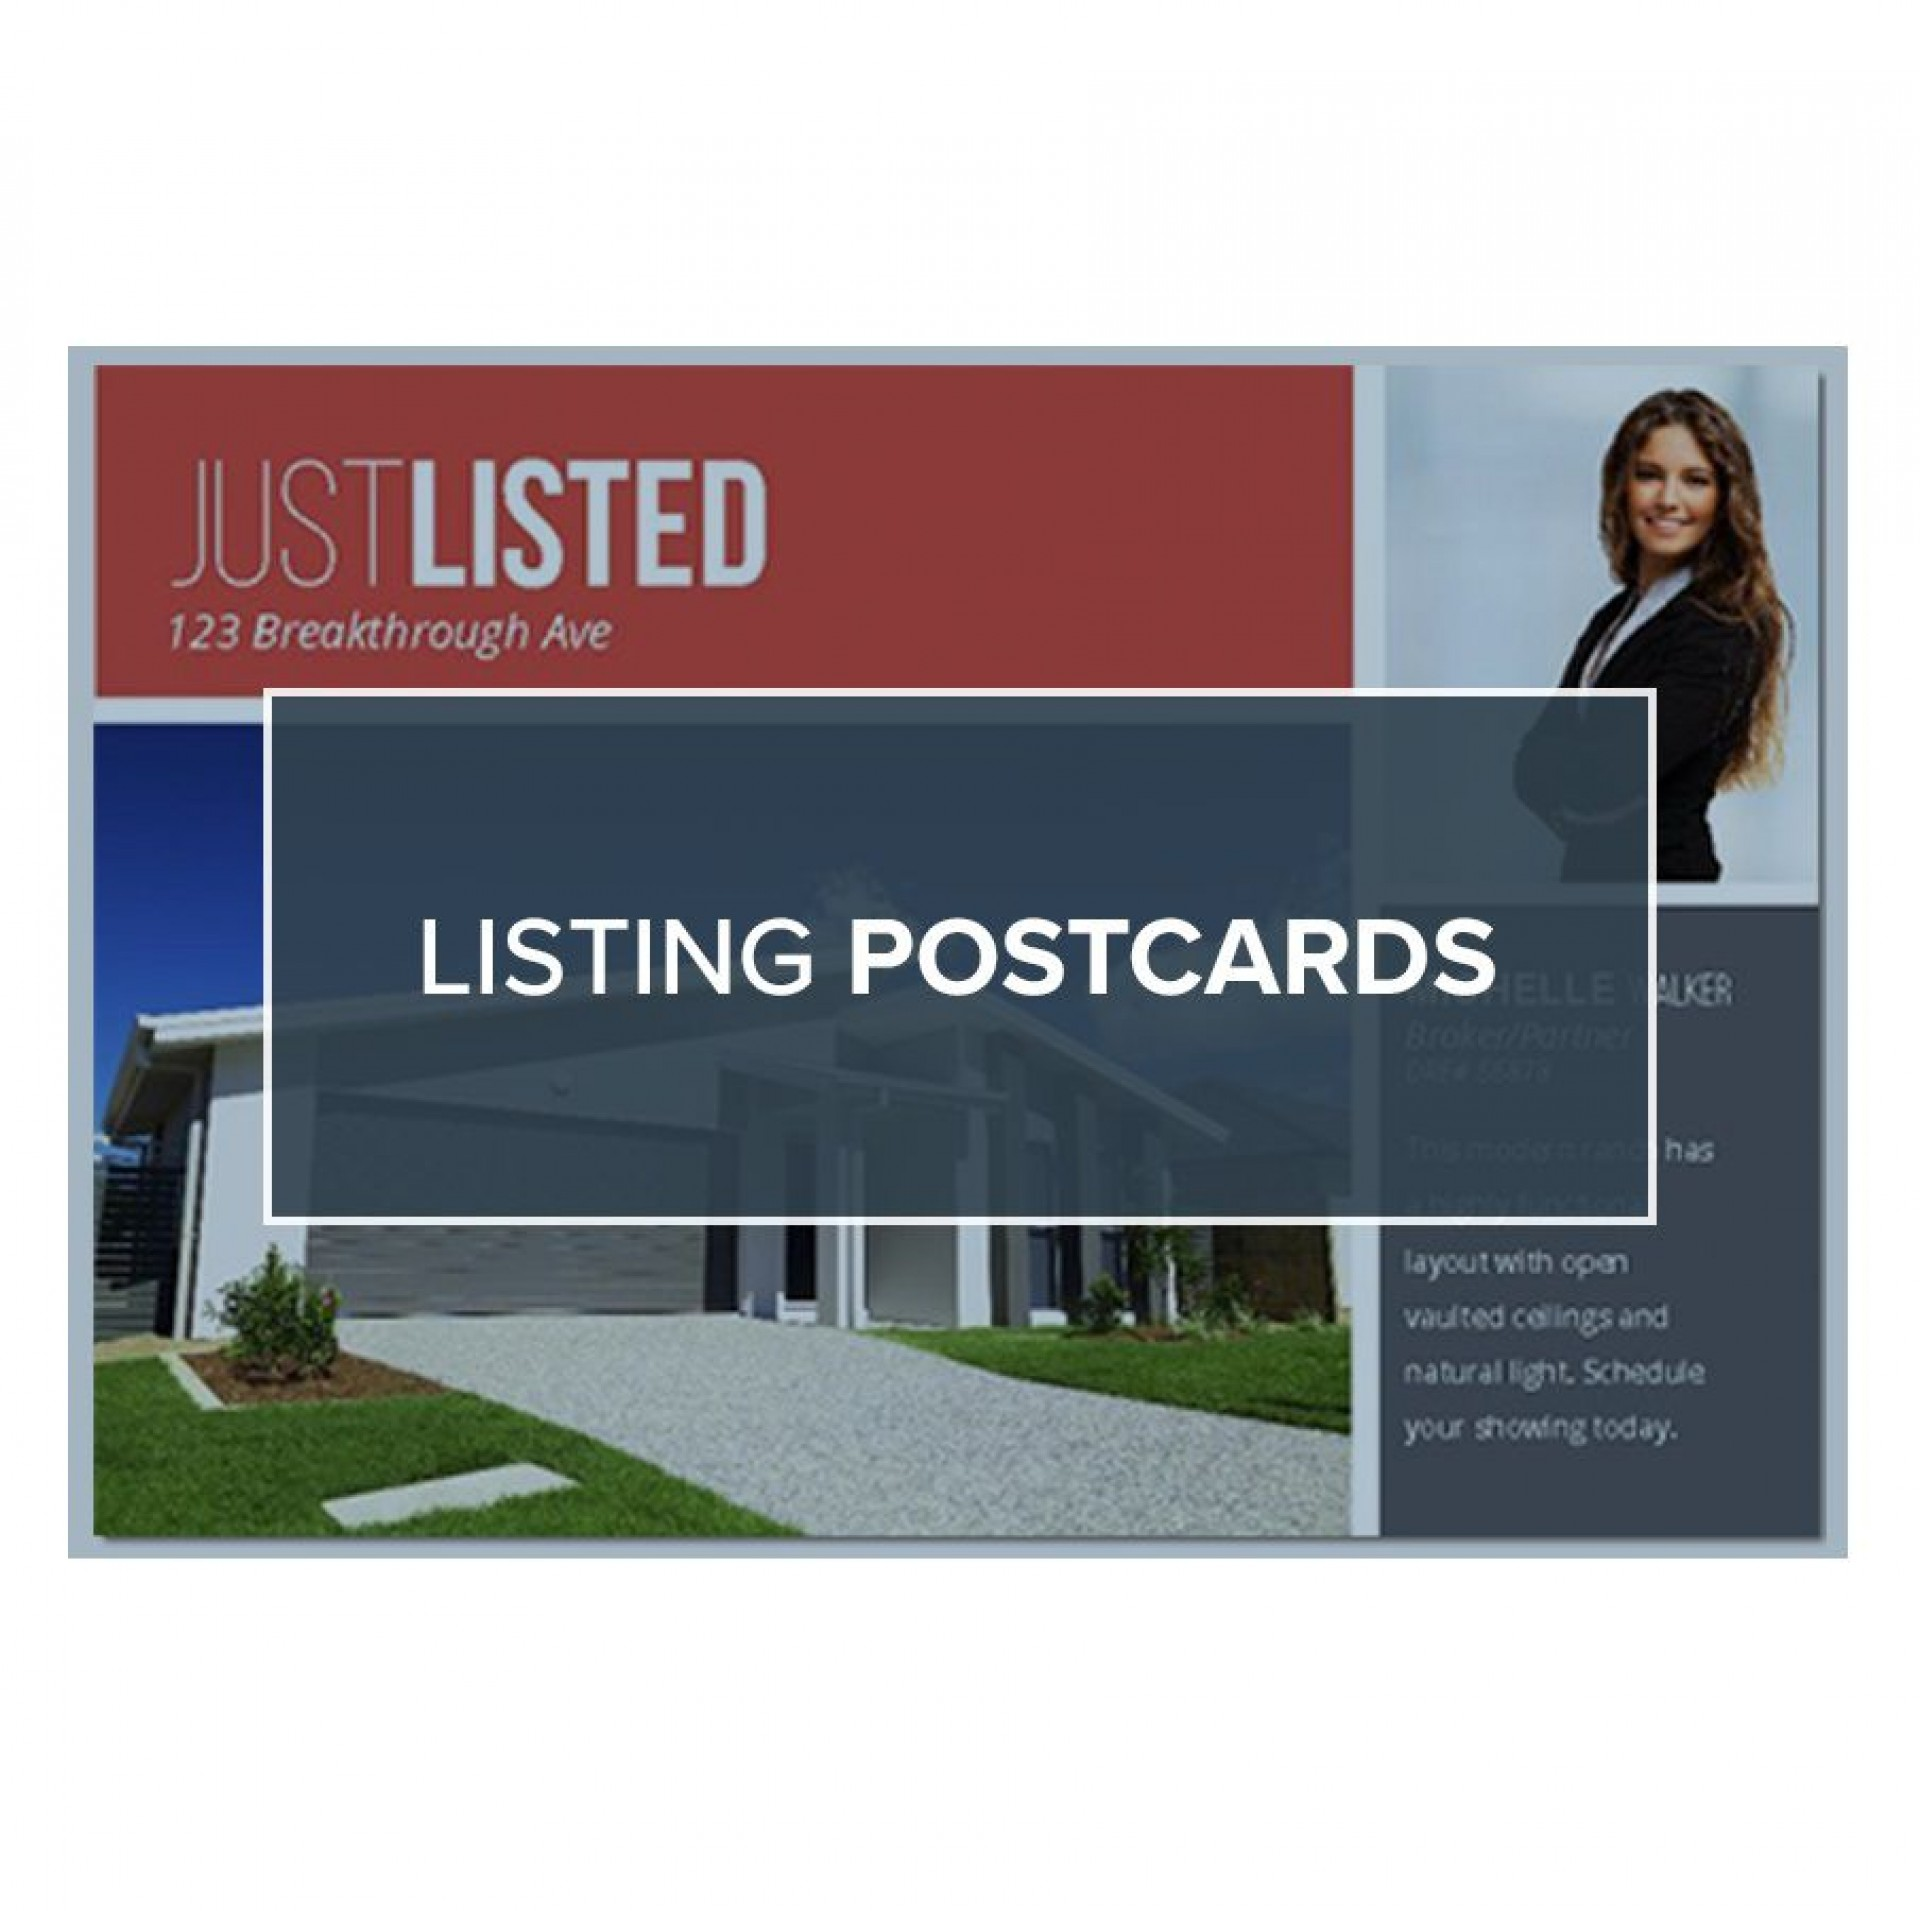 006 Formidable Real Estate Postcard Template Photo  Agent Free Microsoft Word Investor1920